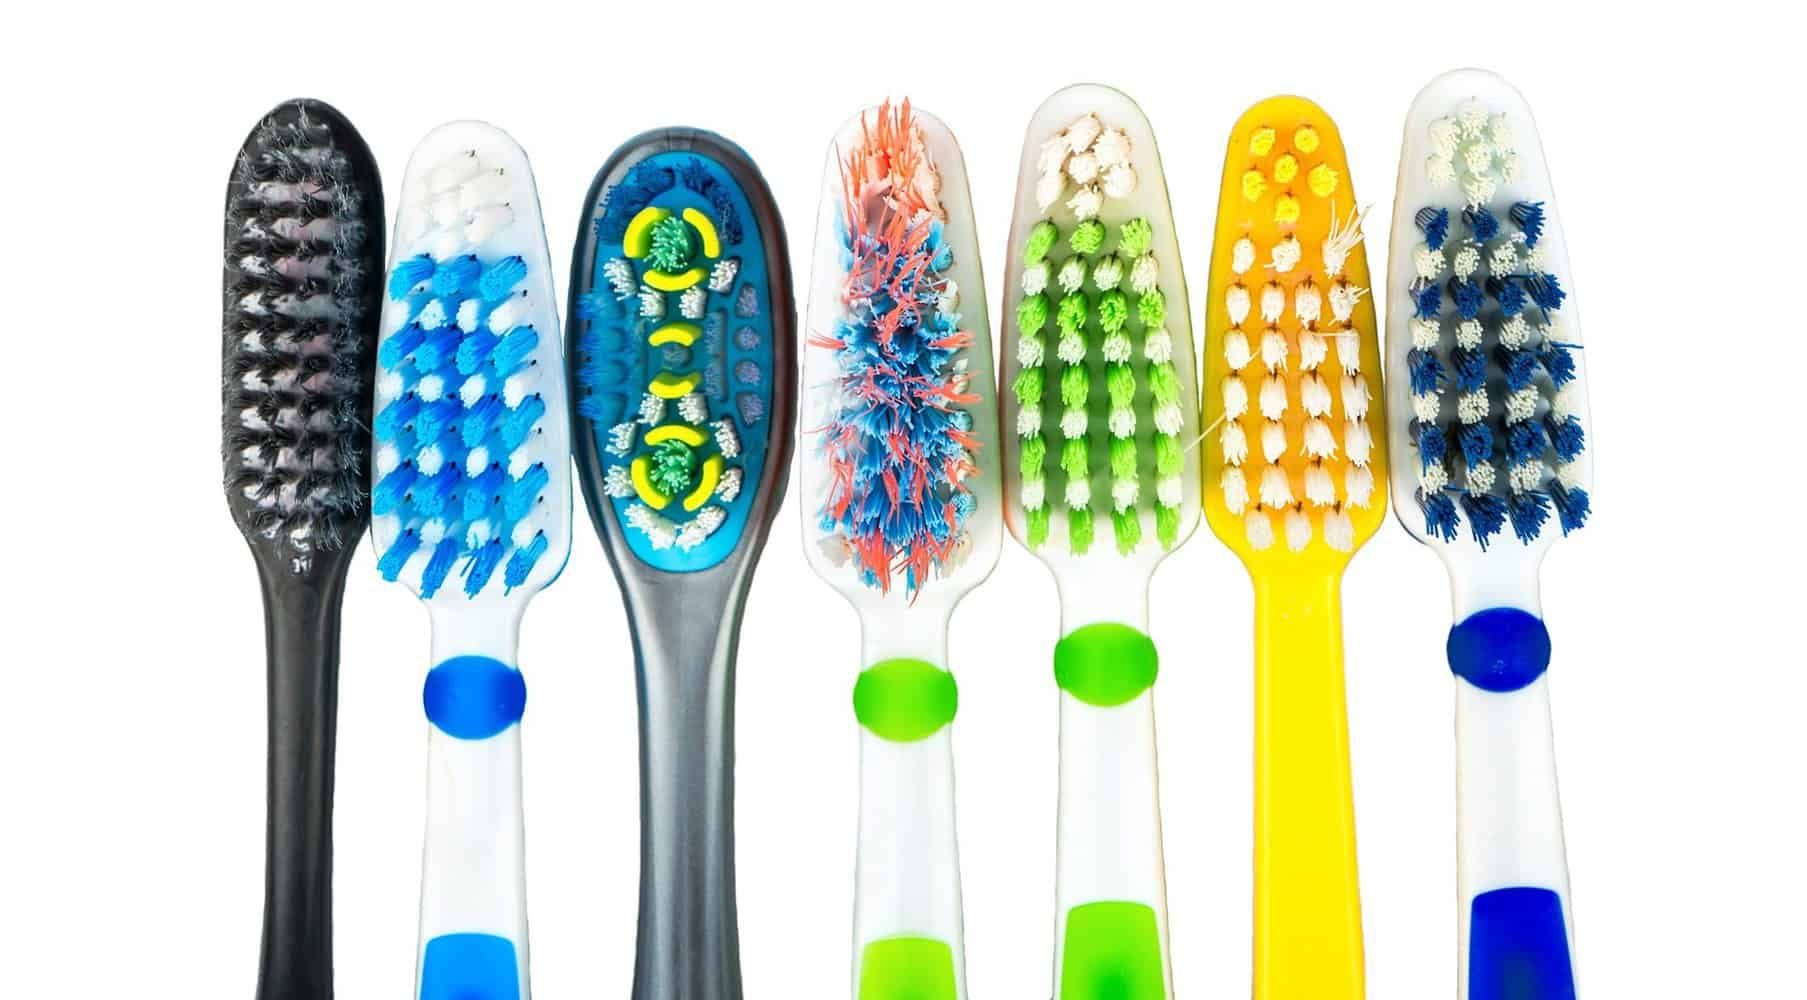 What Are The Best Electric Toothbrushes For Sensitive